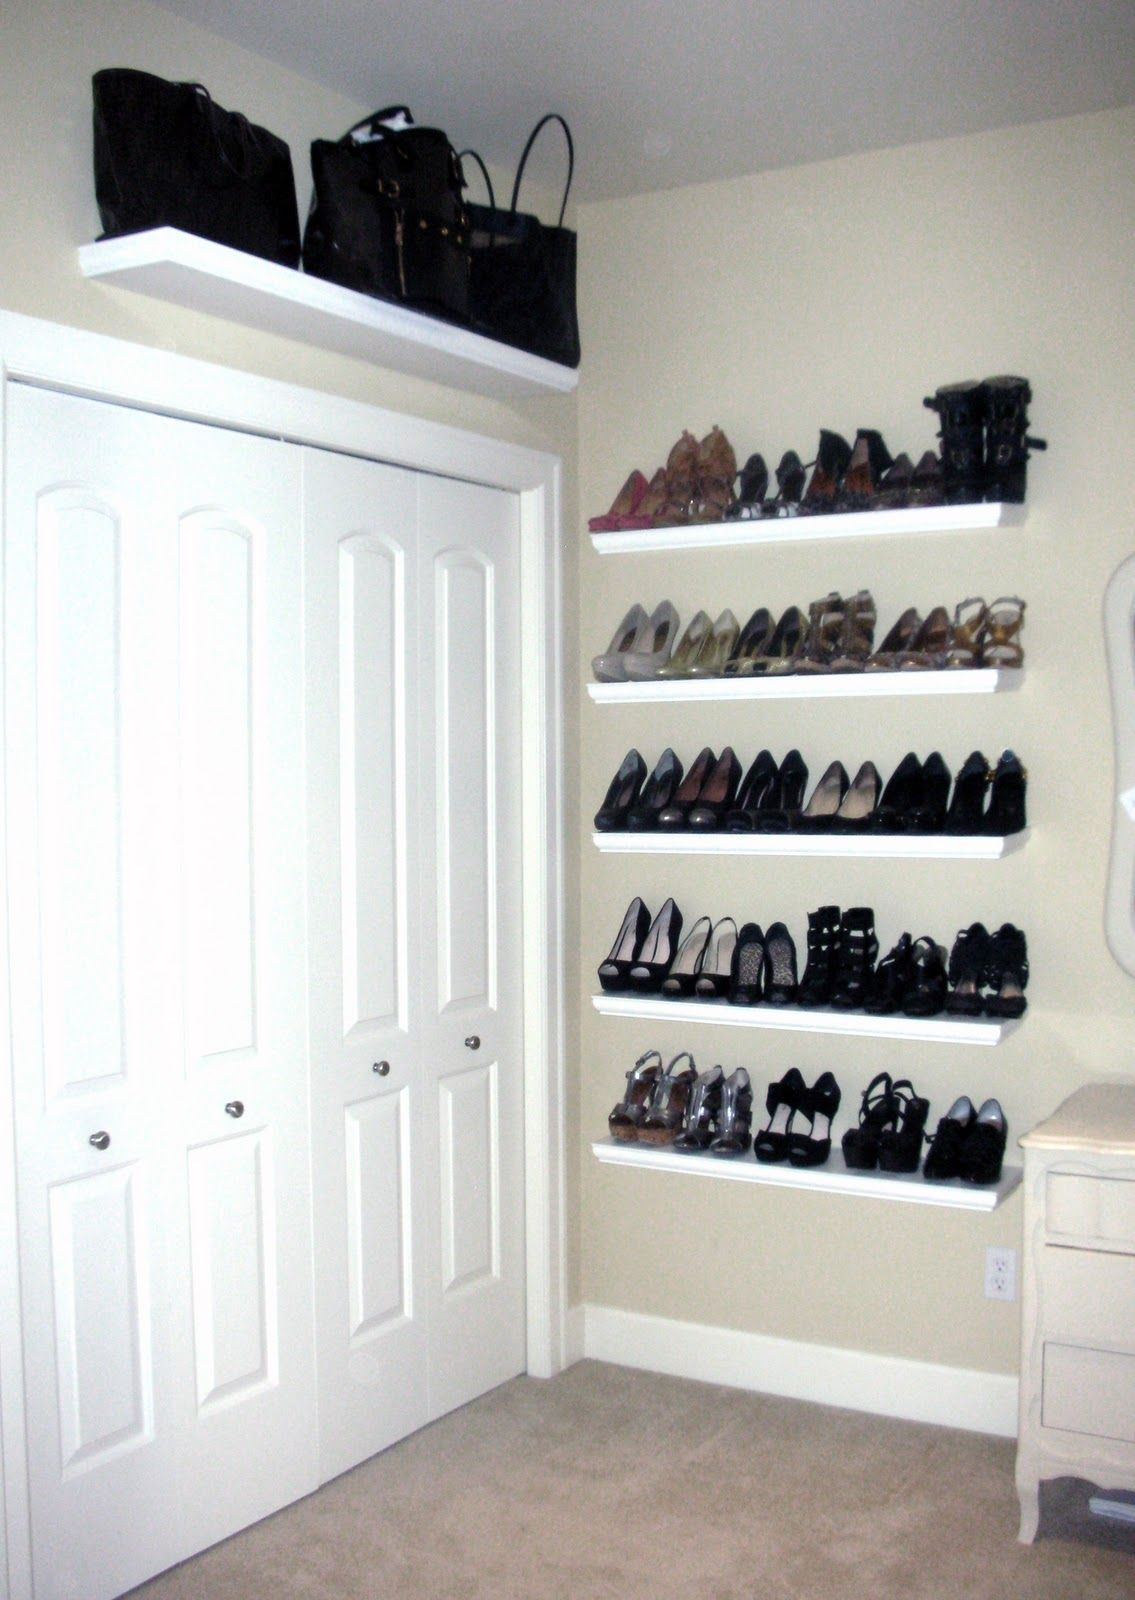 Put some shelves behind the door in the wir for my shoes and some put some shelves behind the door in the wir for my shoes and some hooks amipublicfo Image collections